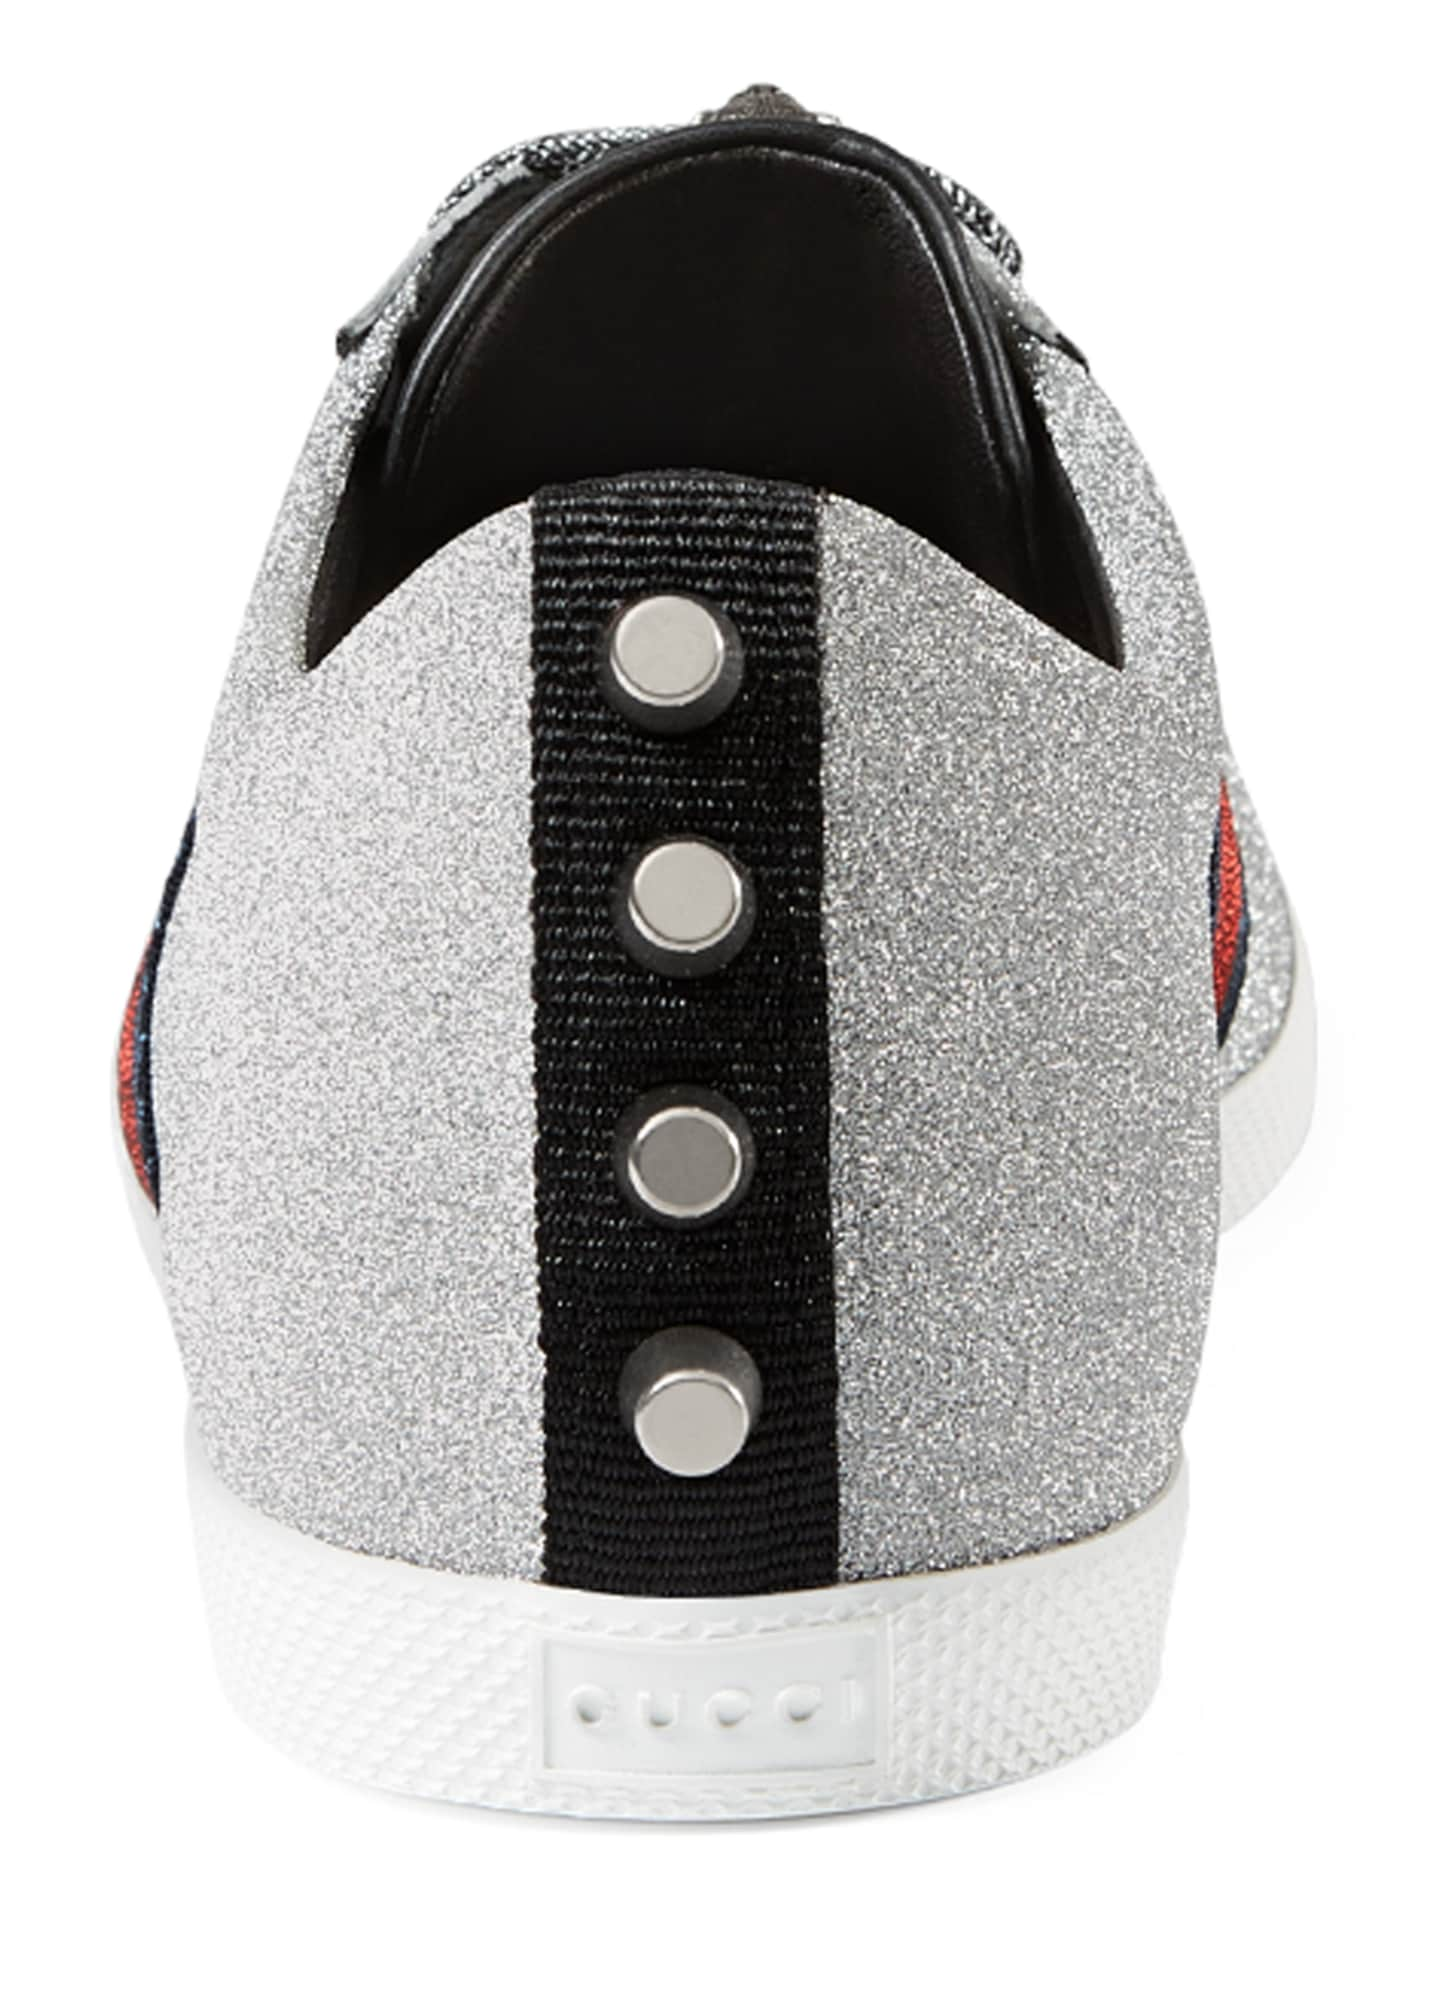 Image 4 of 4: Men's Bambi Web Low-Top Sneakers with Stud Detail, Silver